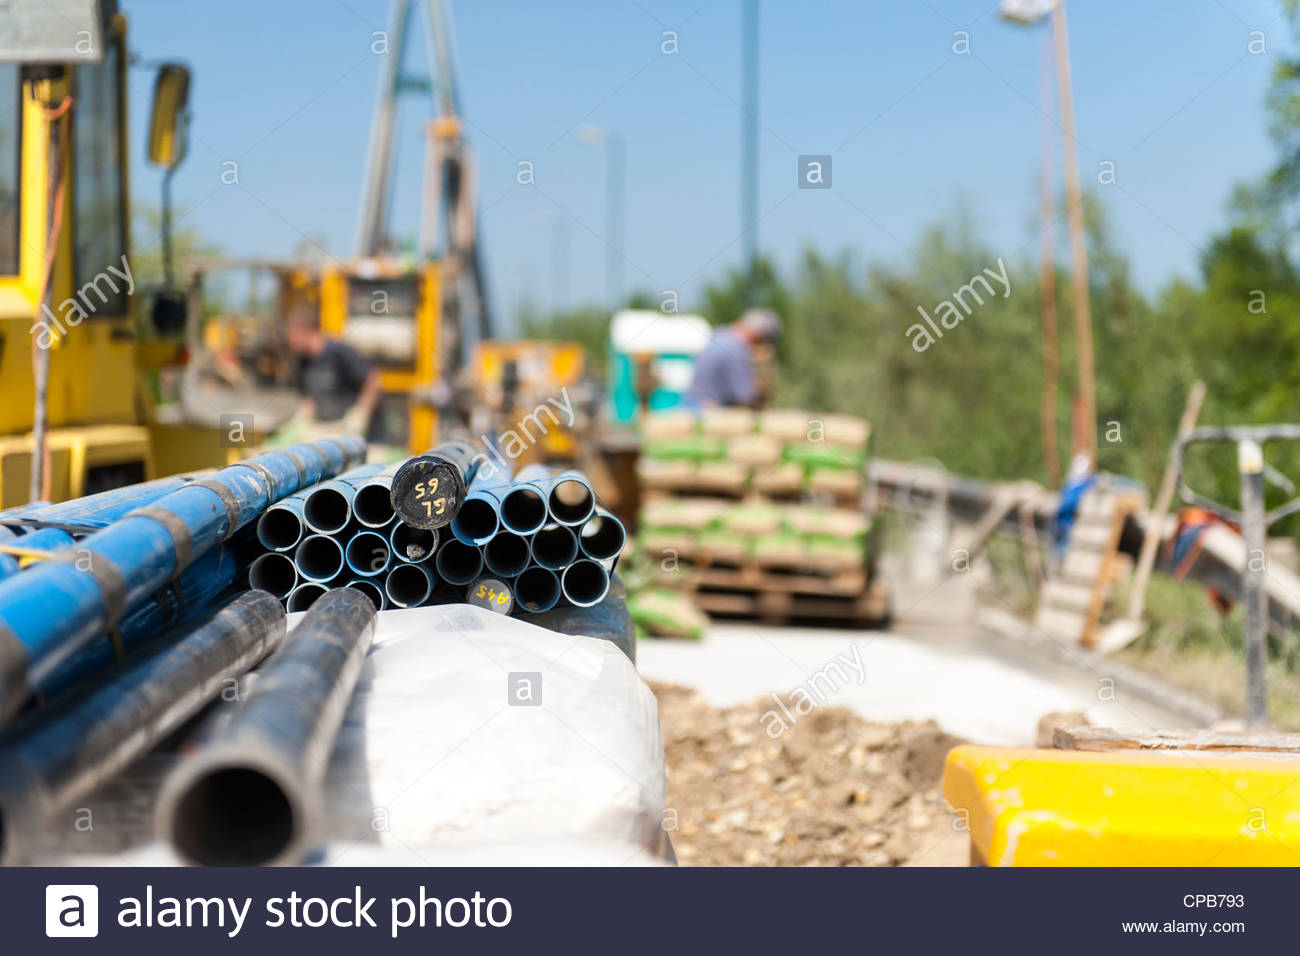 A look at a grouting site. - Stock Image